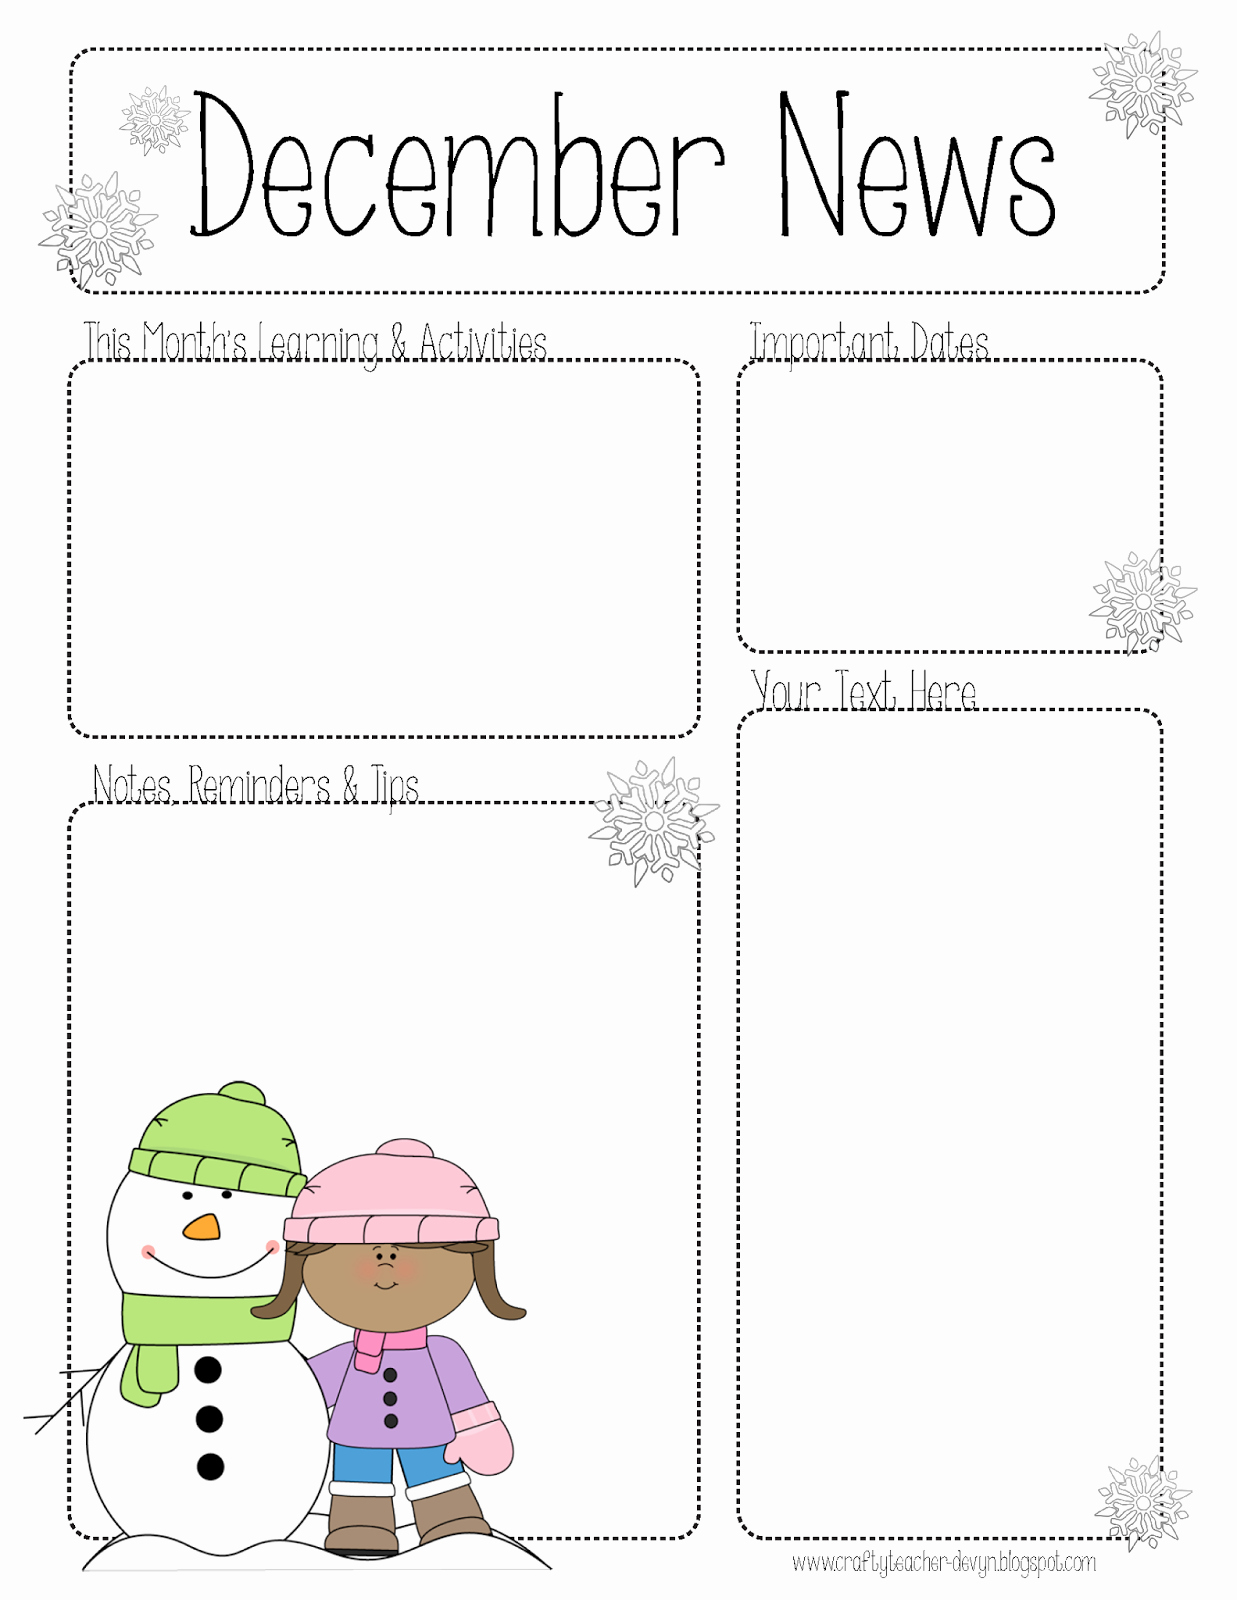 Free Preschool Newsletter Templates Beautiful December Newsletter for All Grades Preschool Pre K